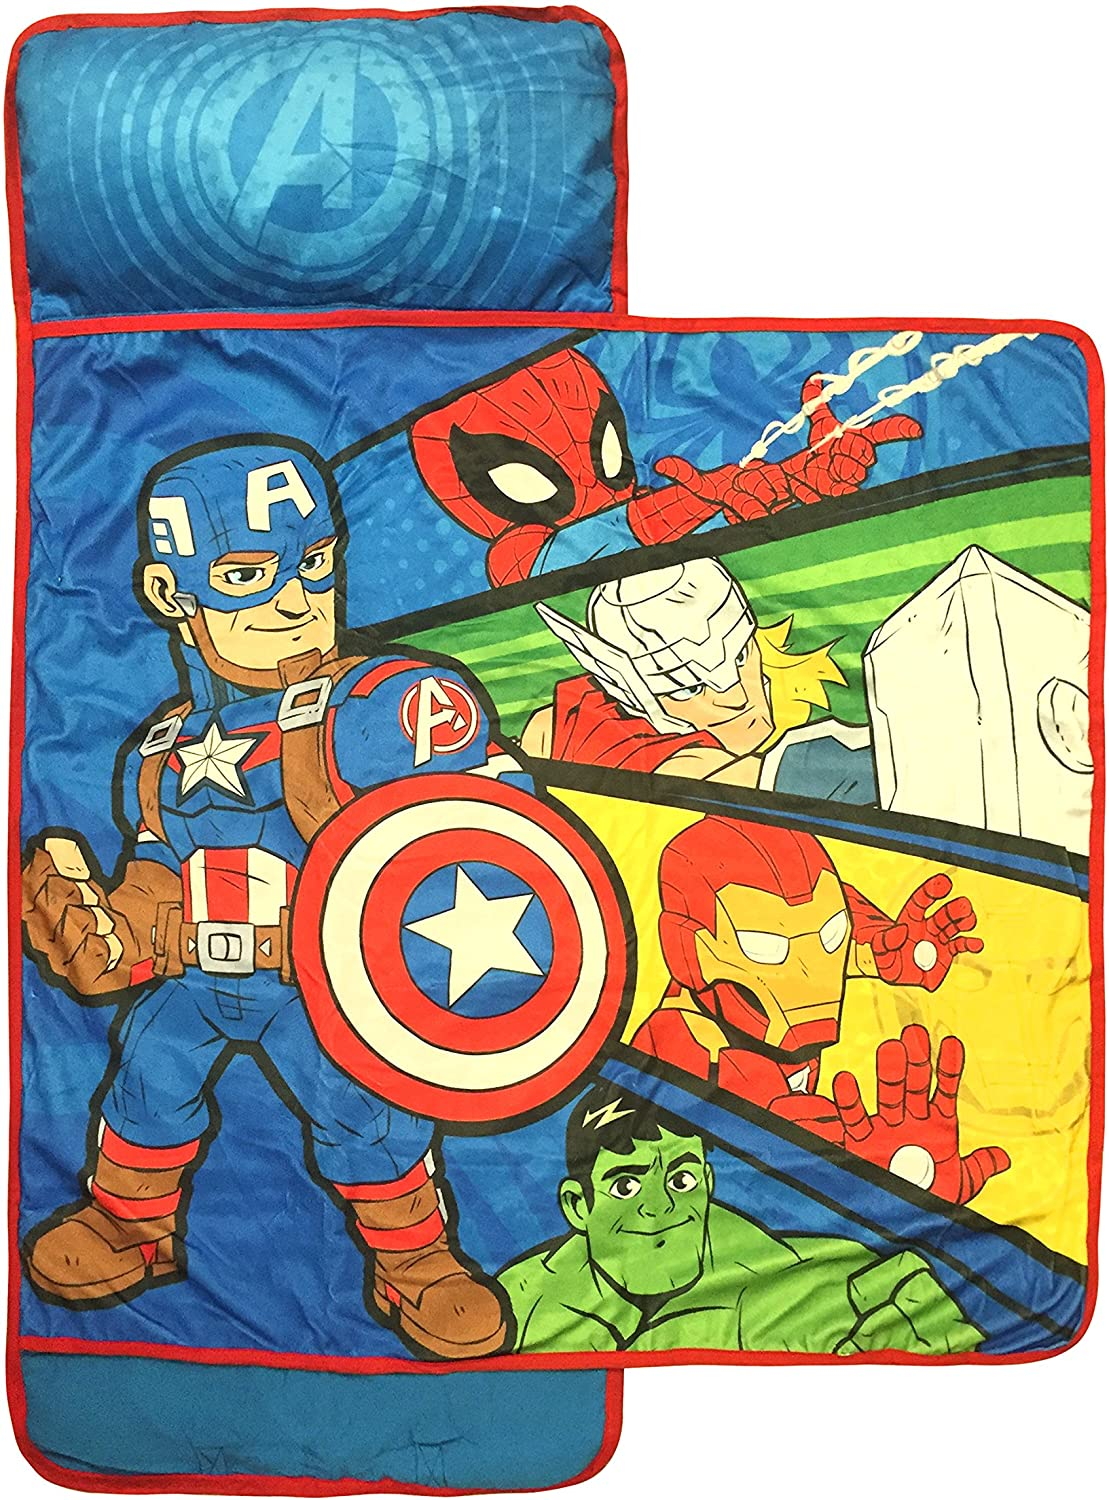 Marvel 70% OFF Outlet Super Hero Adventures Avengers Built-in Mat Miami Mall Pillow Nap -